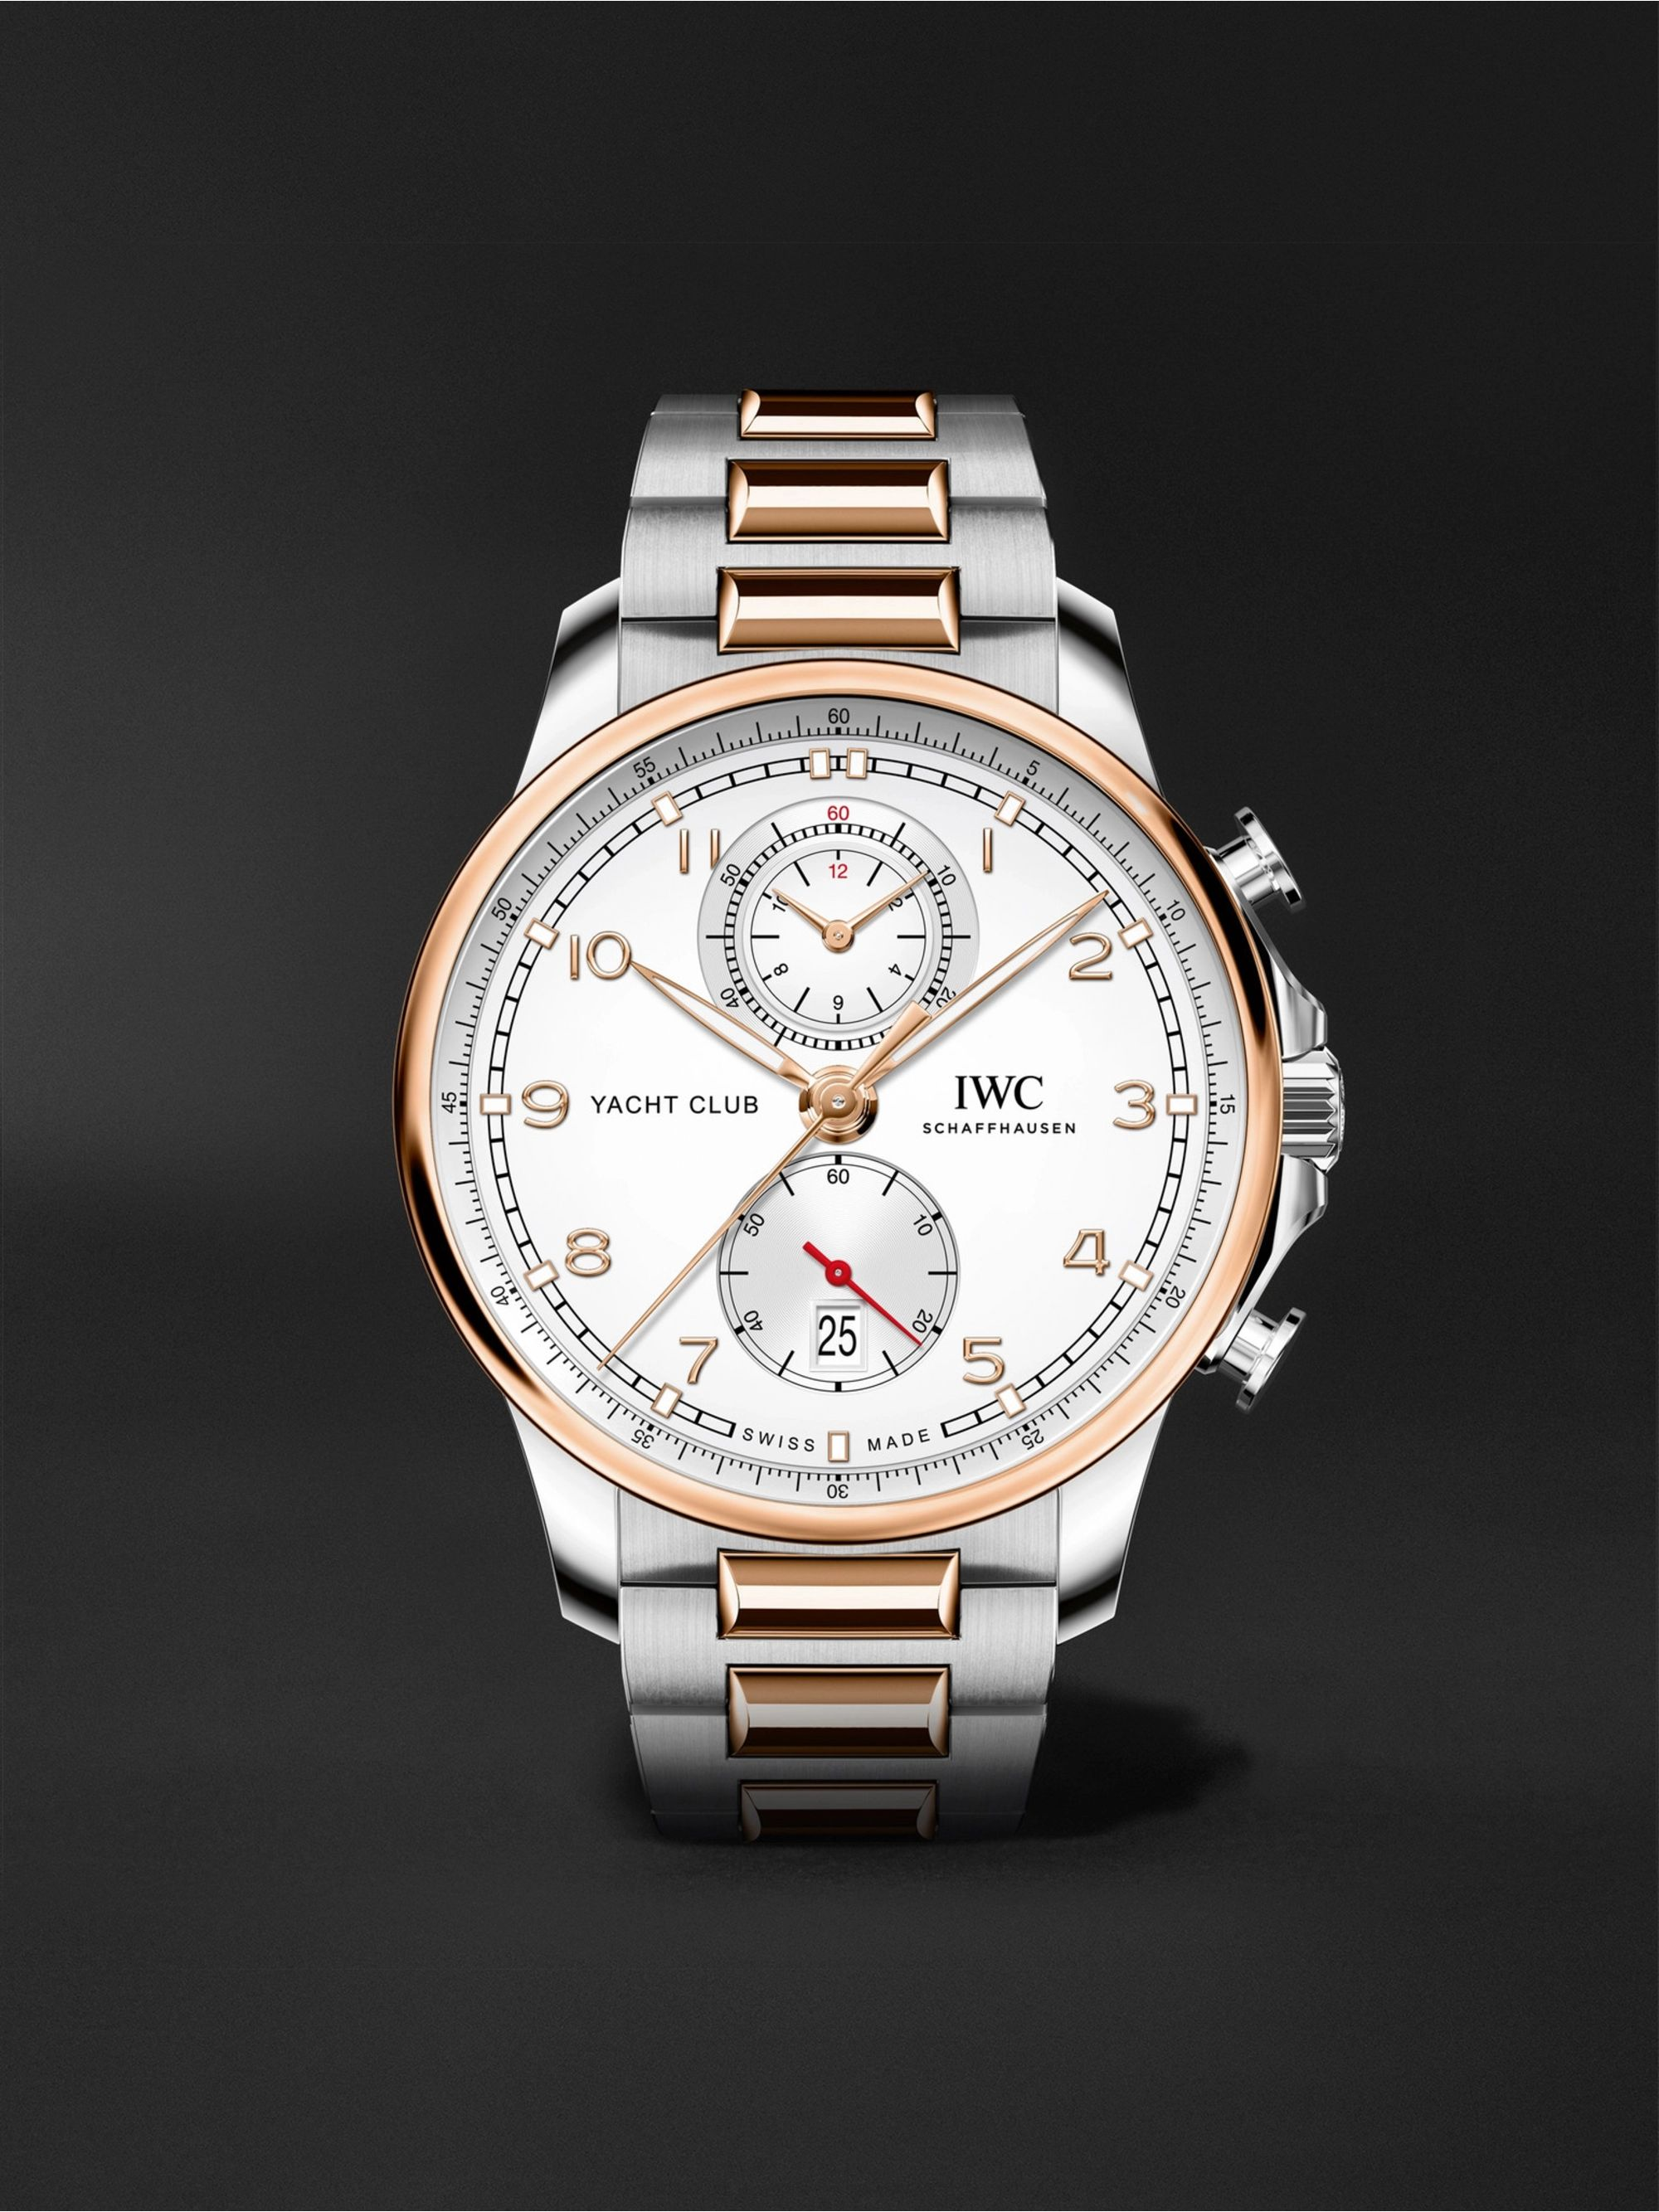 IWC SCHAFFHAUSEN Portugieser Yacht Club Automatic Chronograph 44.6mm 18-Karat Red Gold and Stainless Steel Watch, Ref. No. IW390703